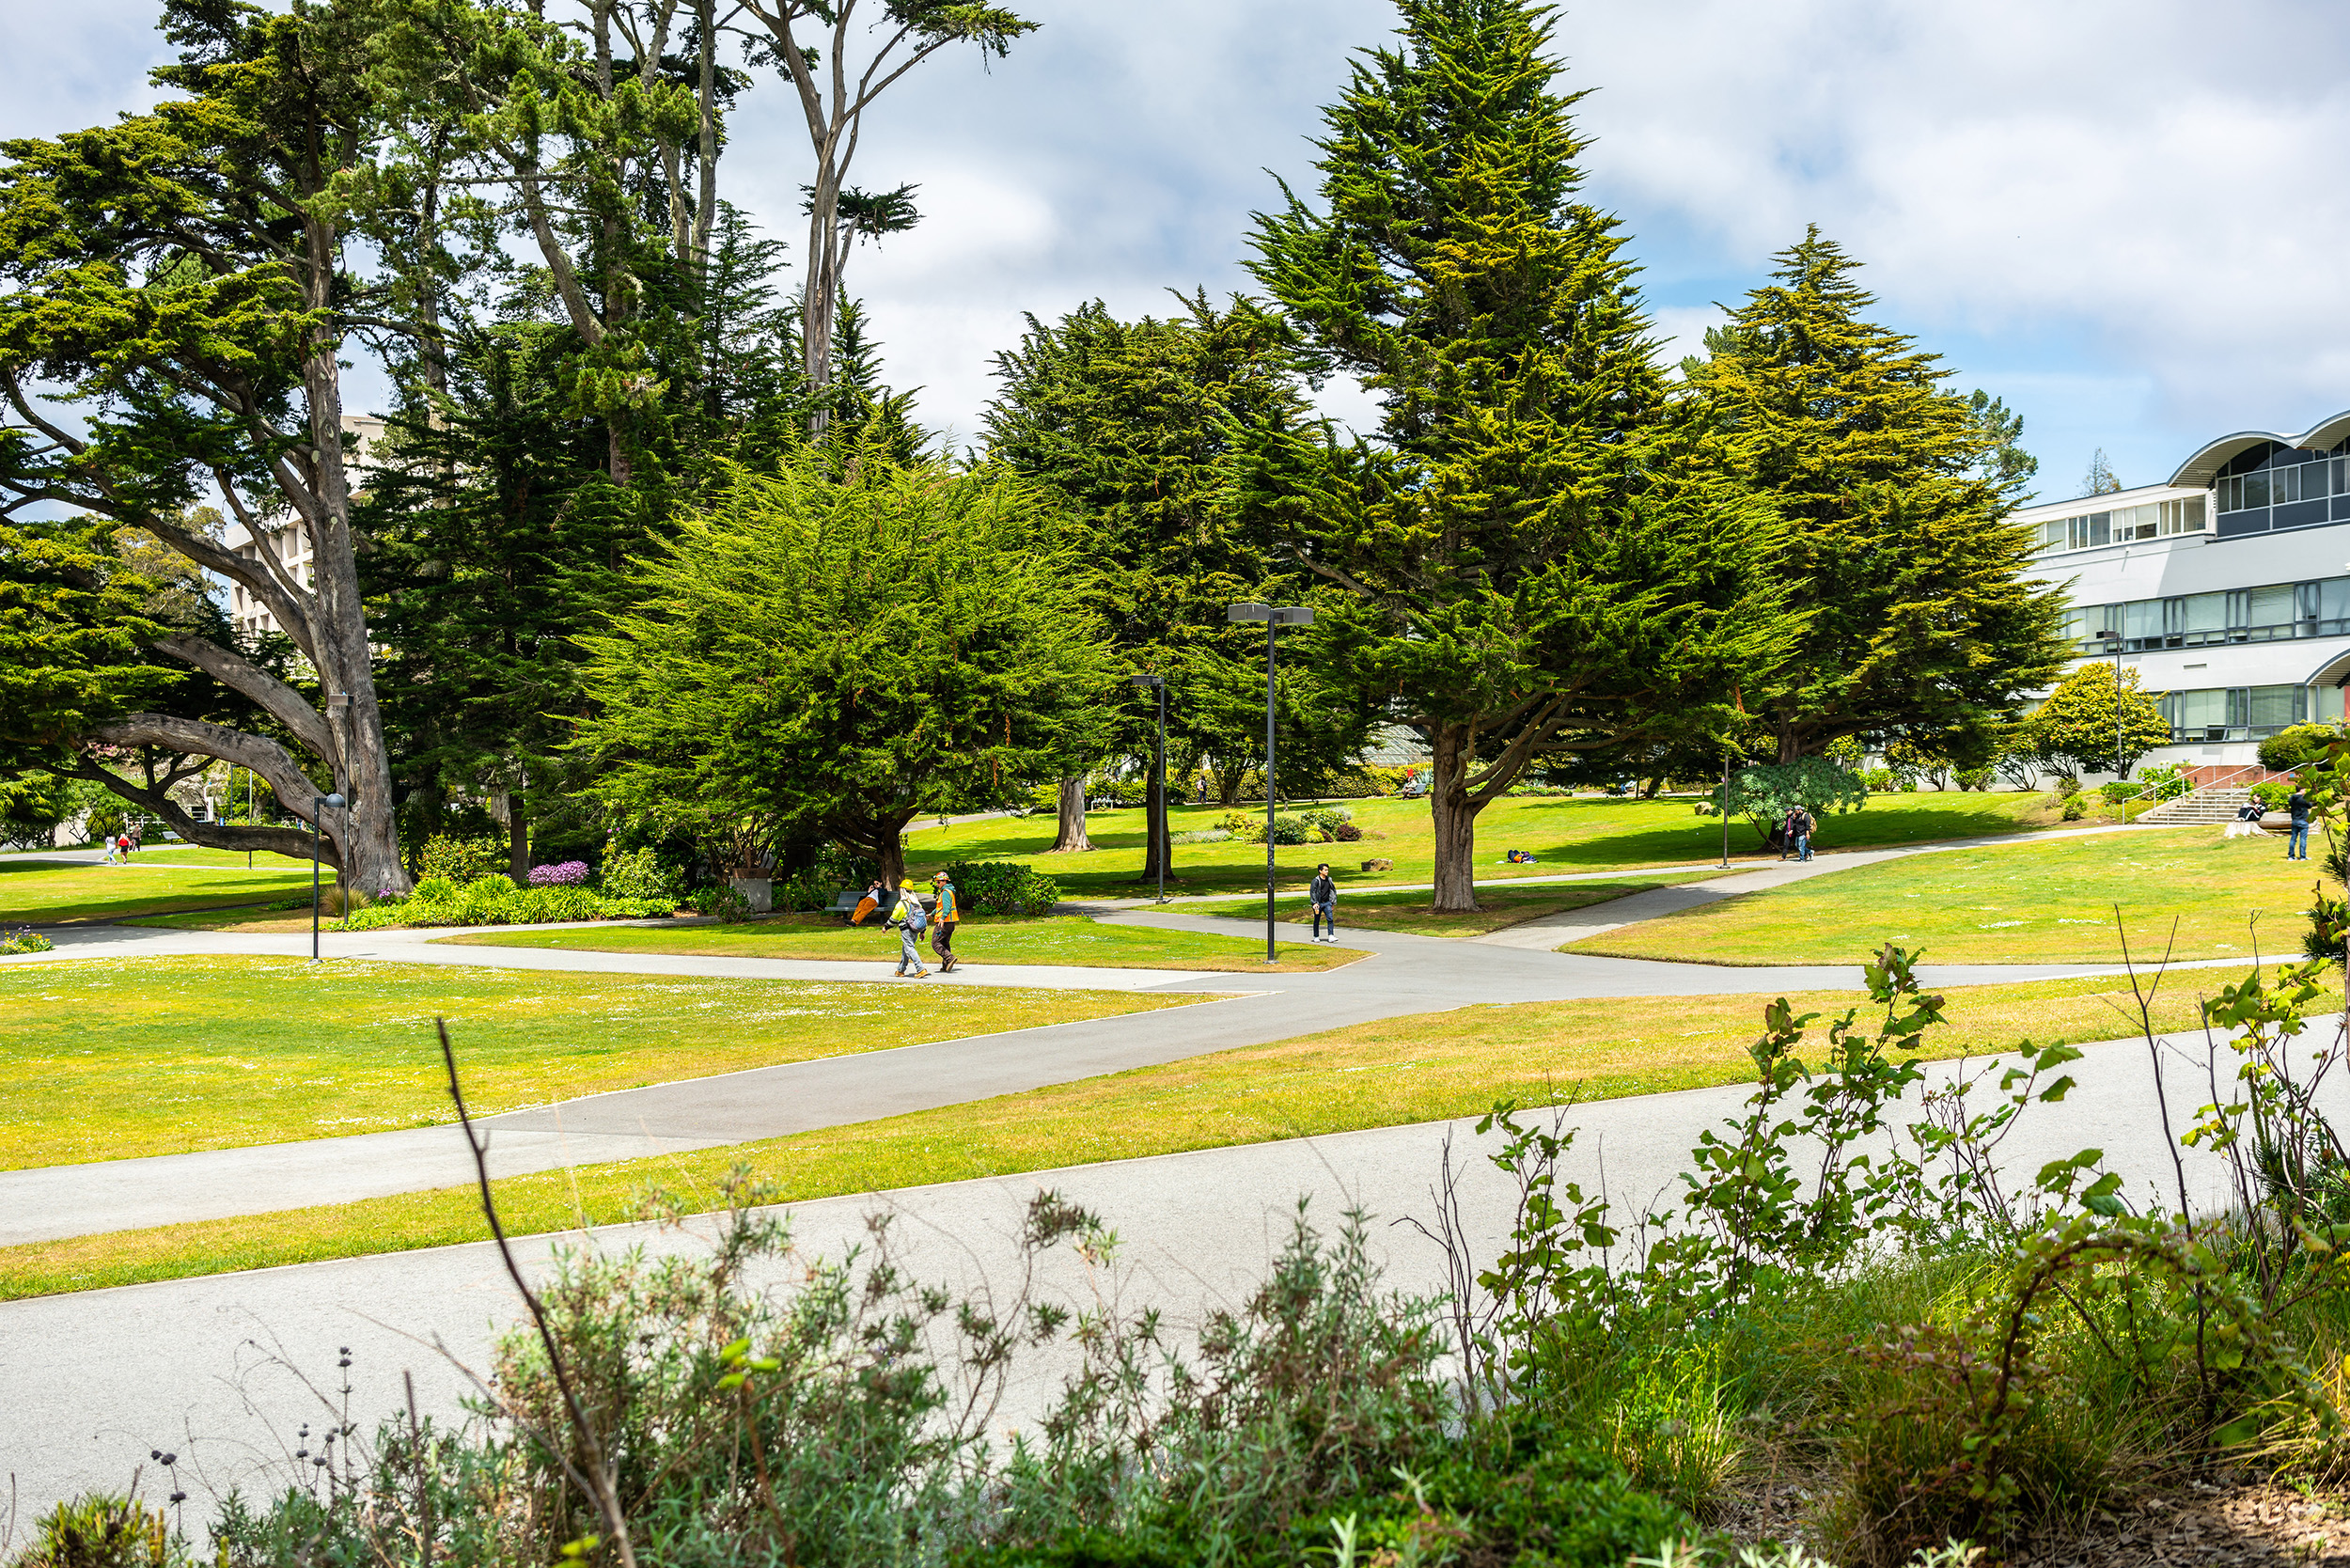 Sunny afternoons on campus. Or what passes for sunny in San Francisco anyways.